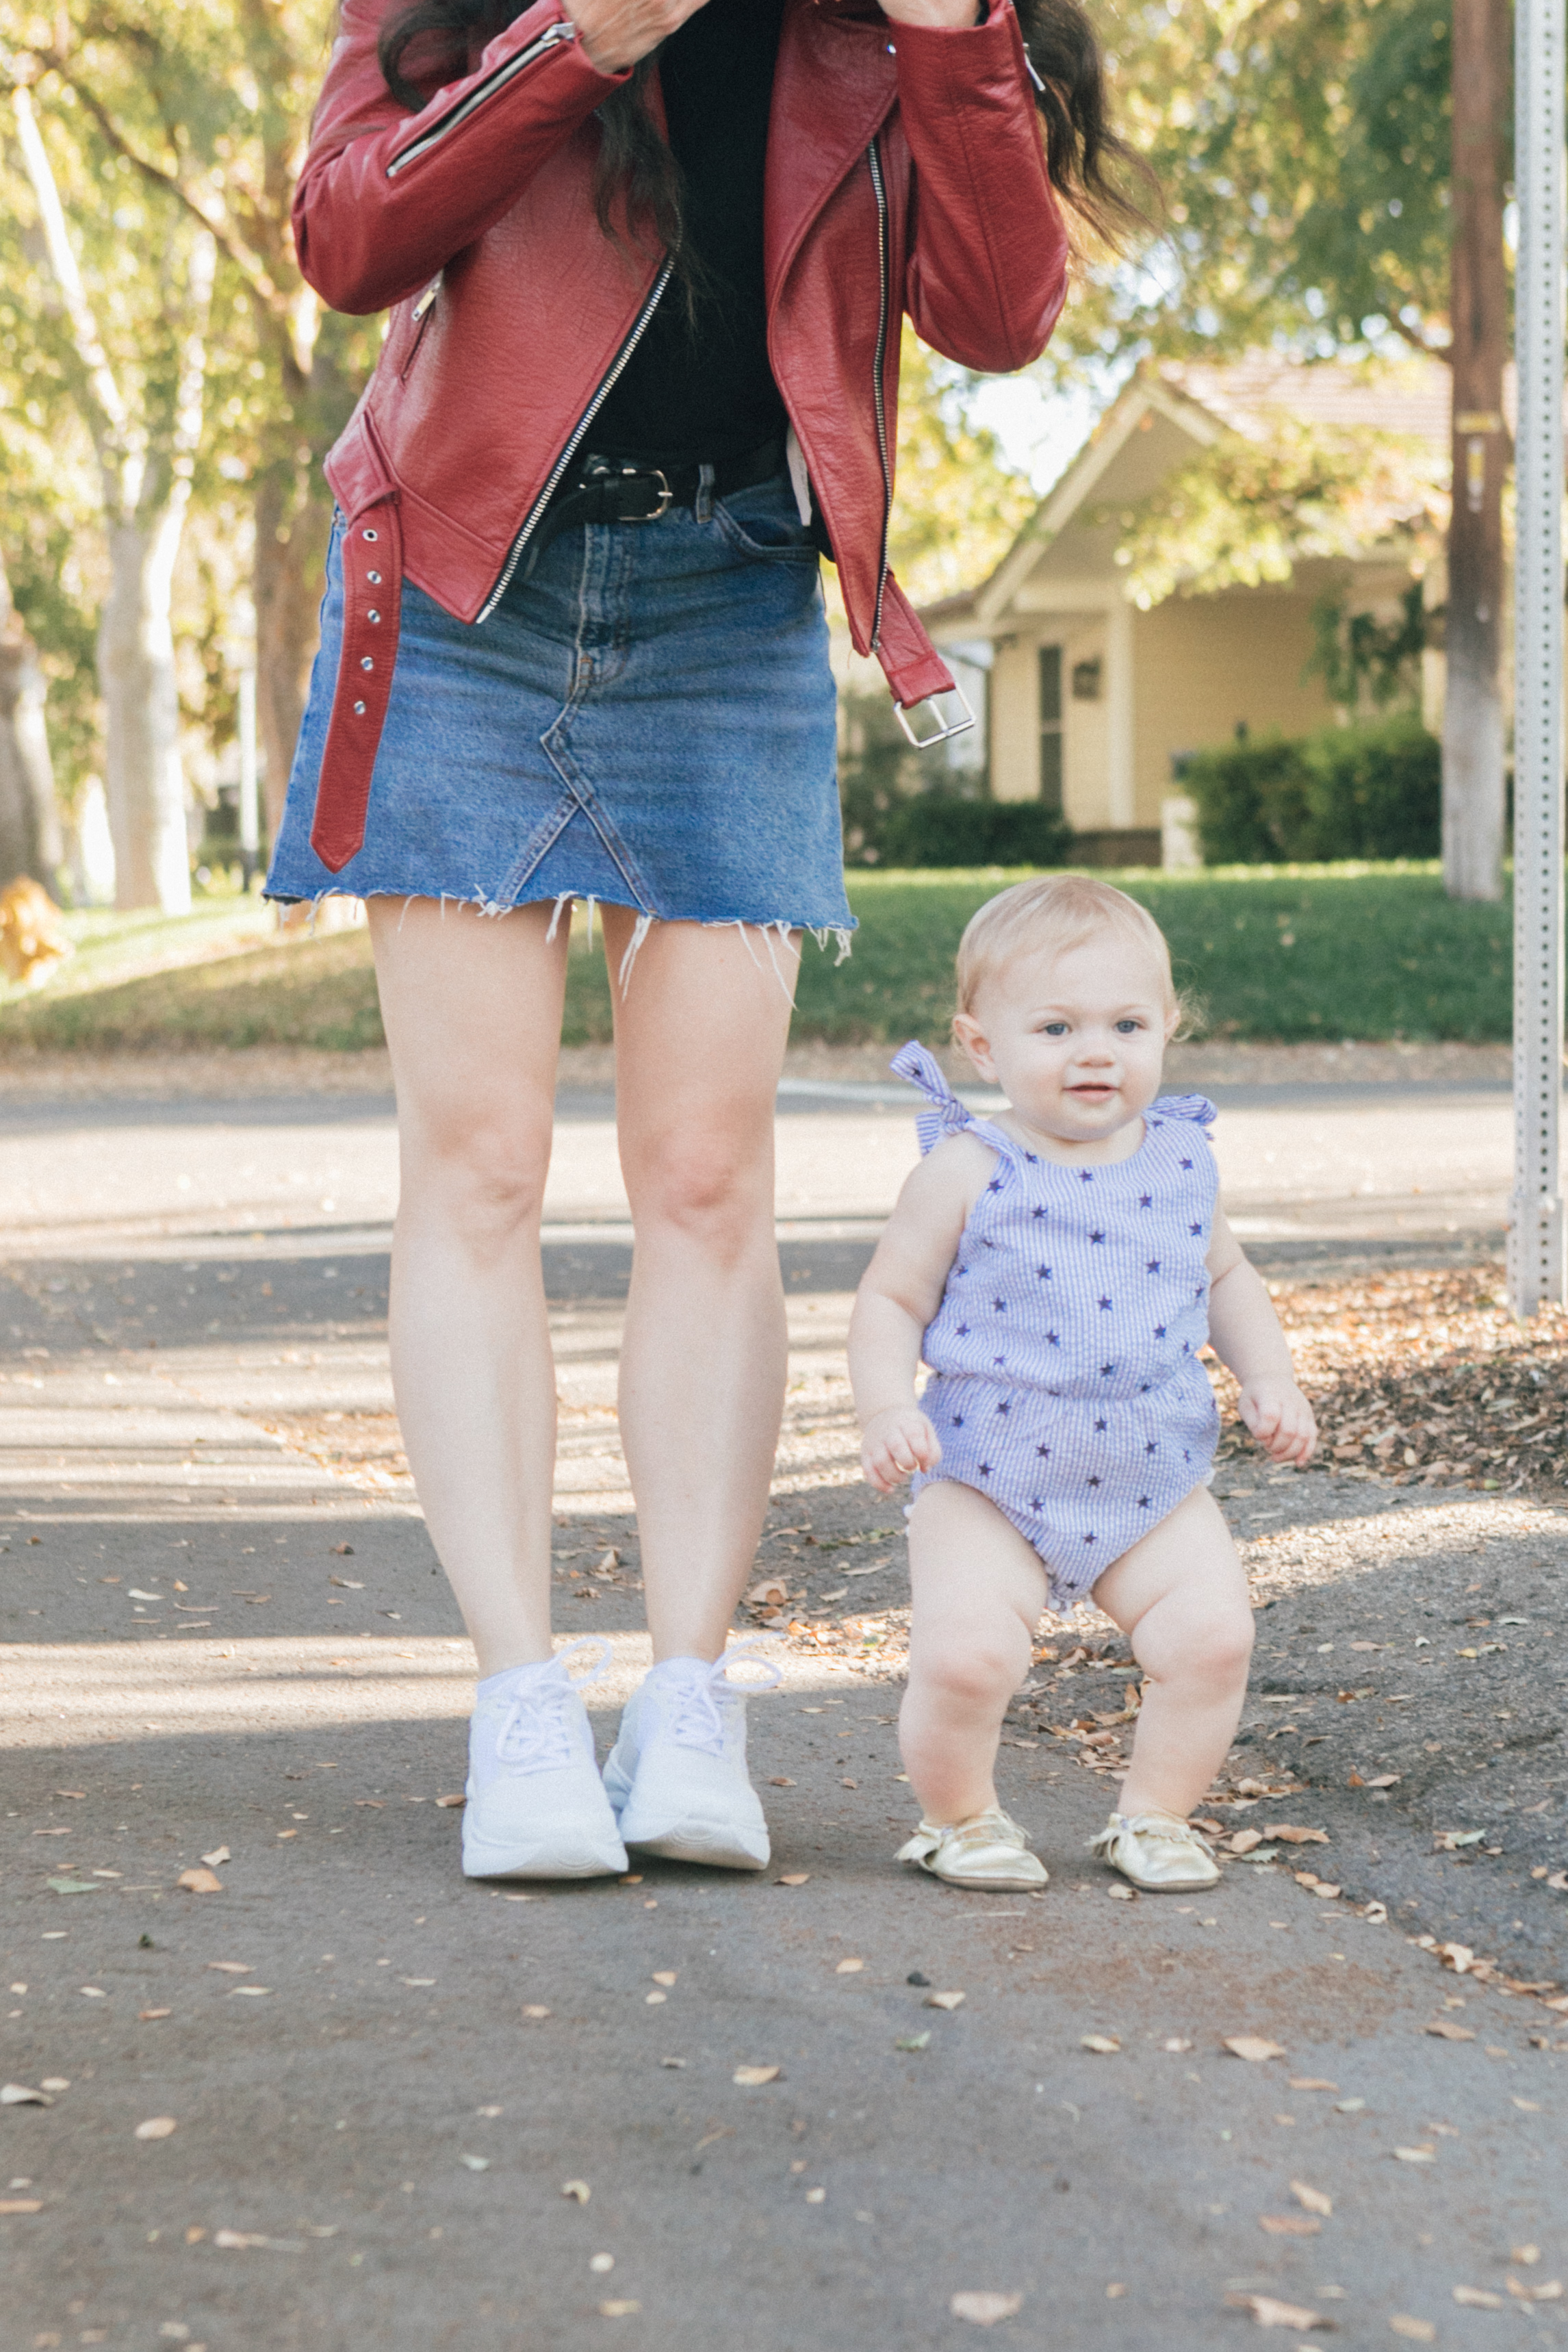 Los Angeles Blogger, RELish By Arielle pairs a red moto jacket with dad sneakers